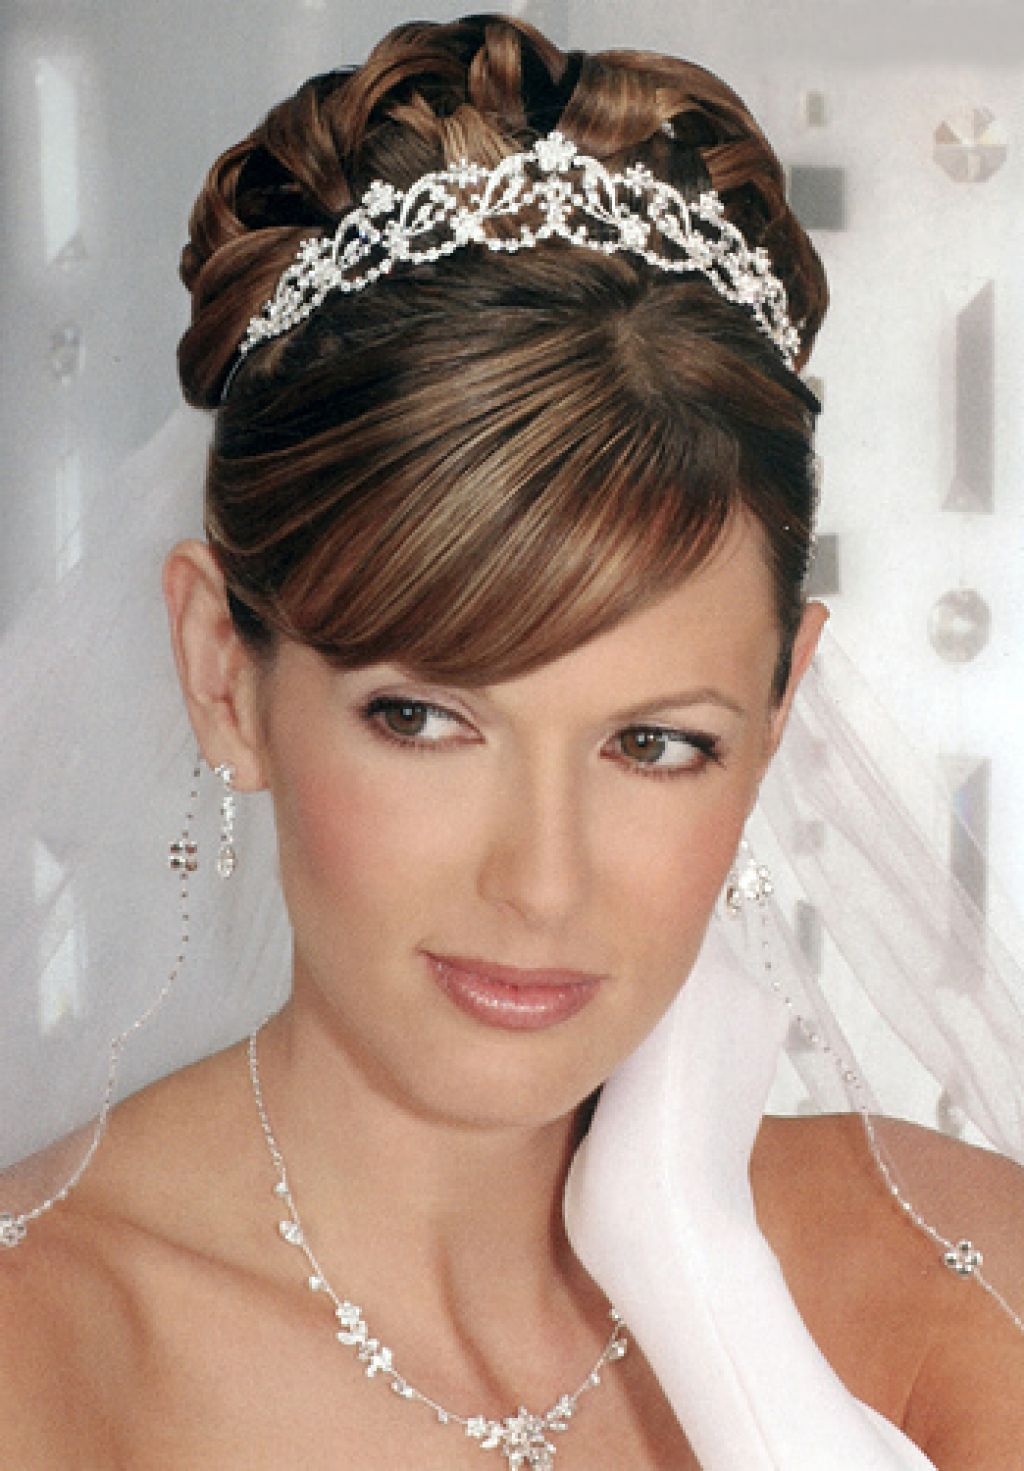 Bridal tiaras and veils - Wedding Hairstyles Updos With Tiara And Veil